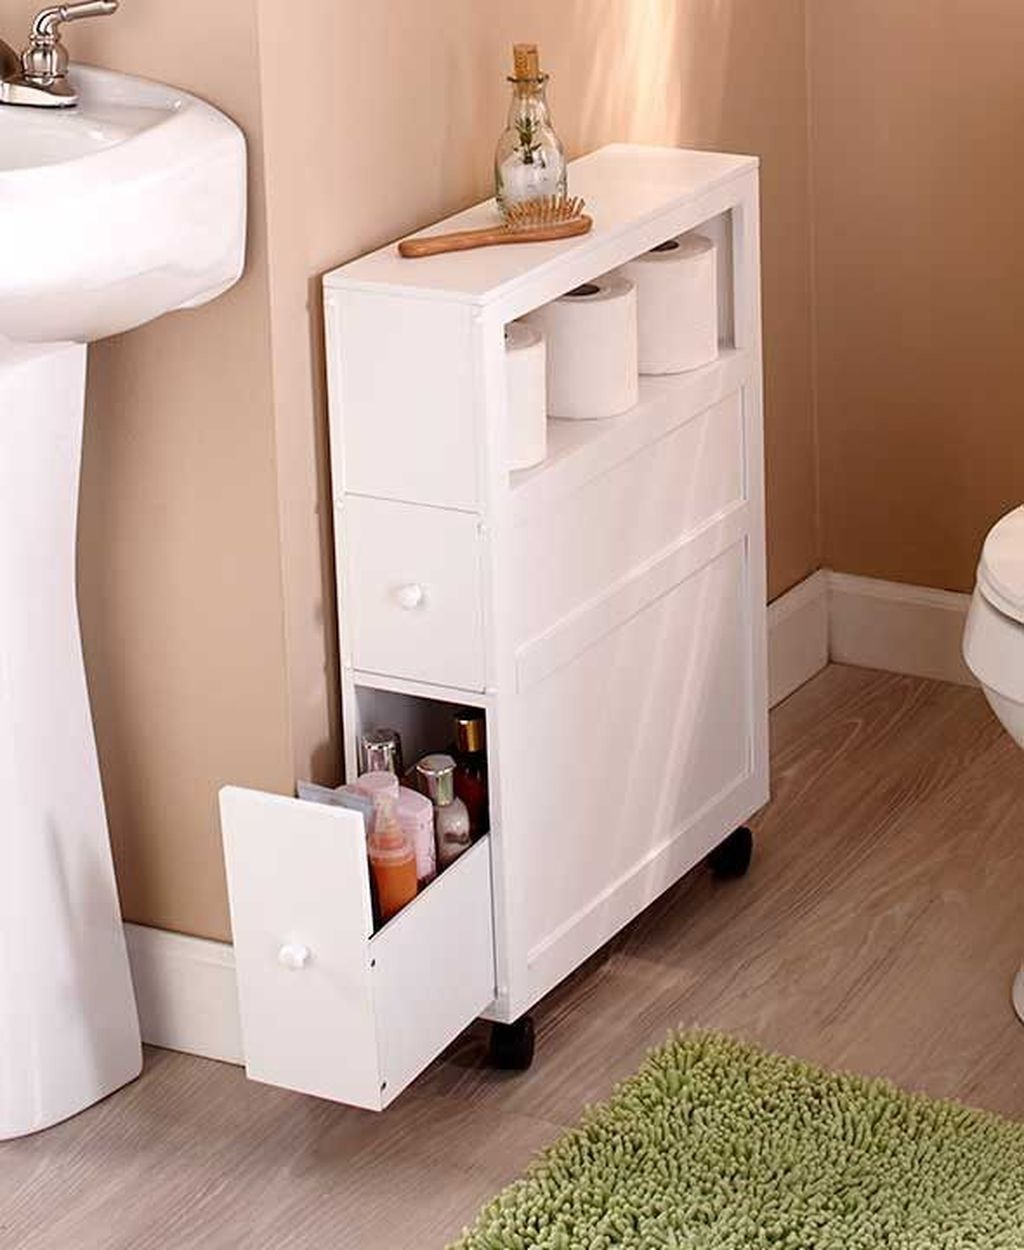 Toilet Paper Storage Ideas Small Spaces Tiny House